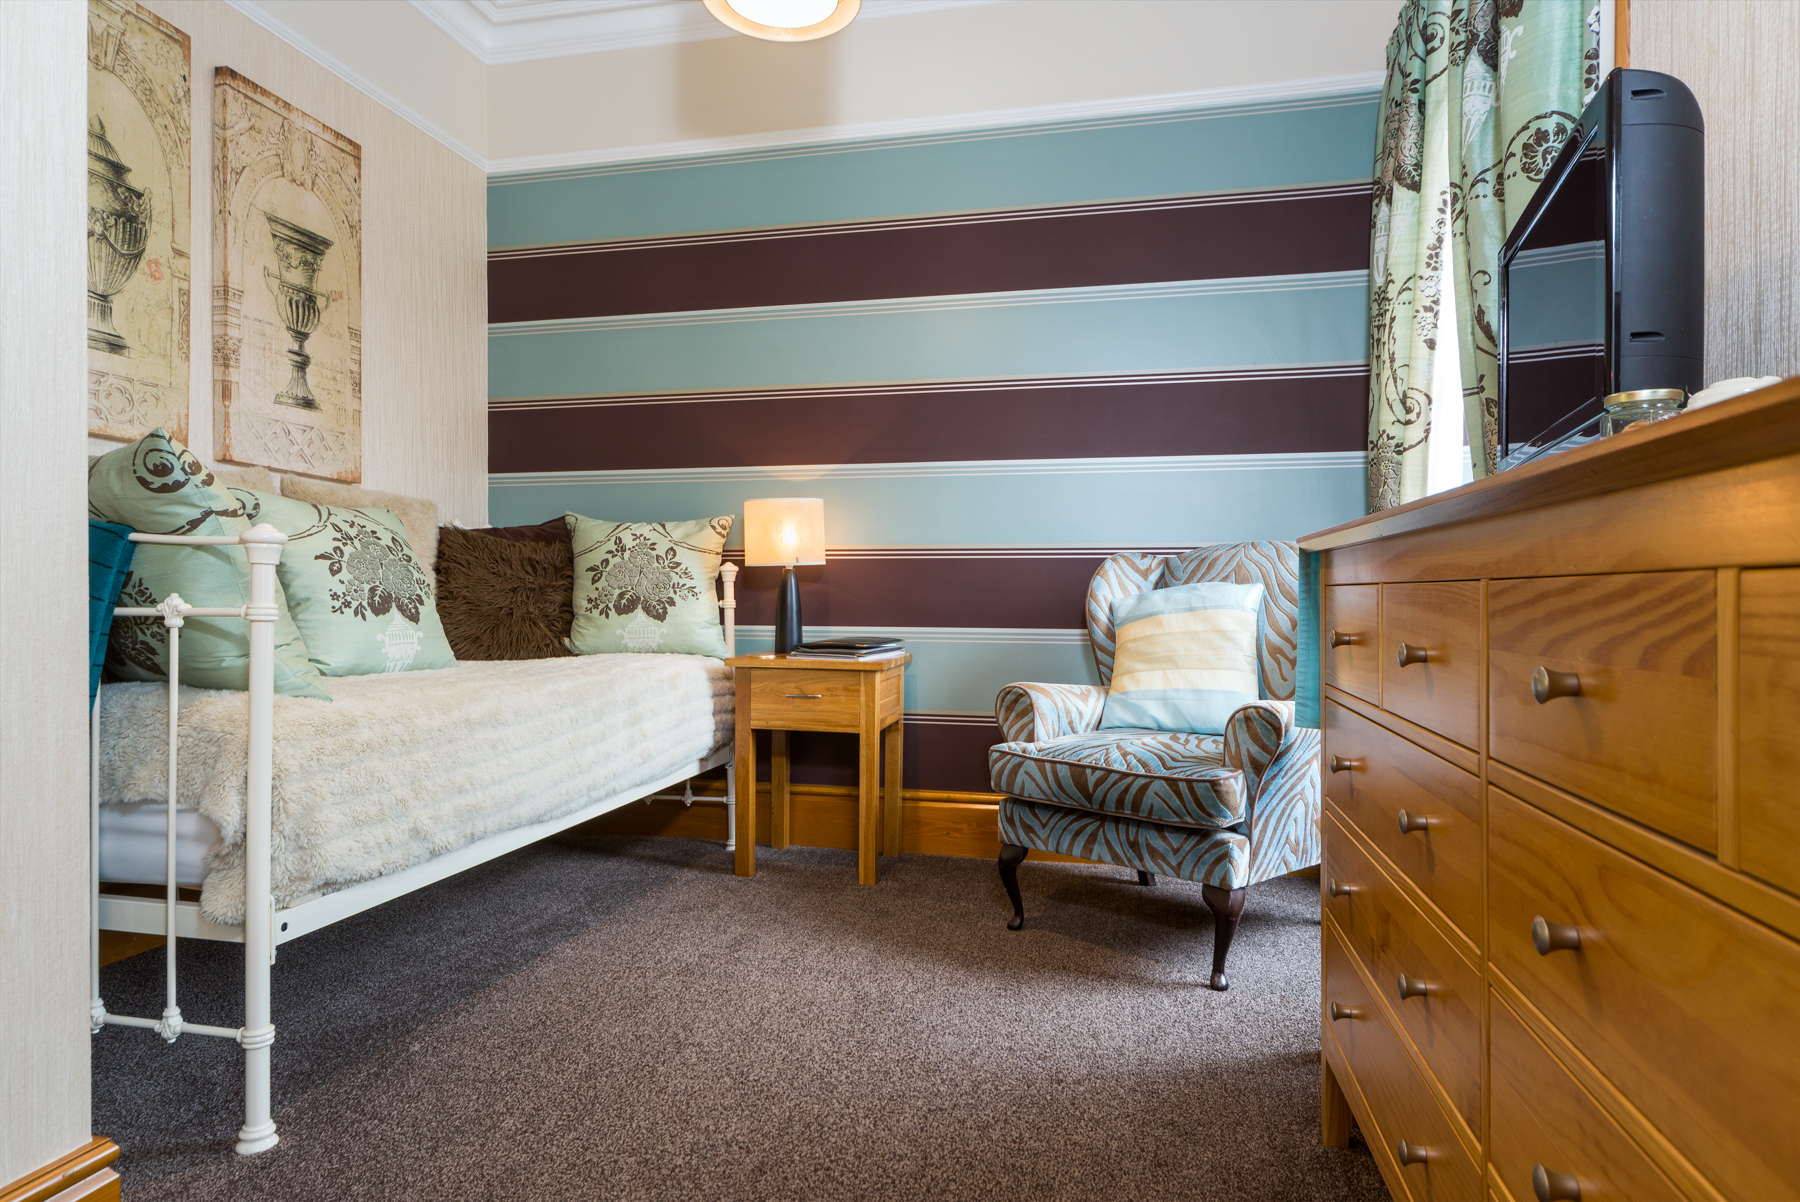 BrooklandsGH_Room6-2Web